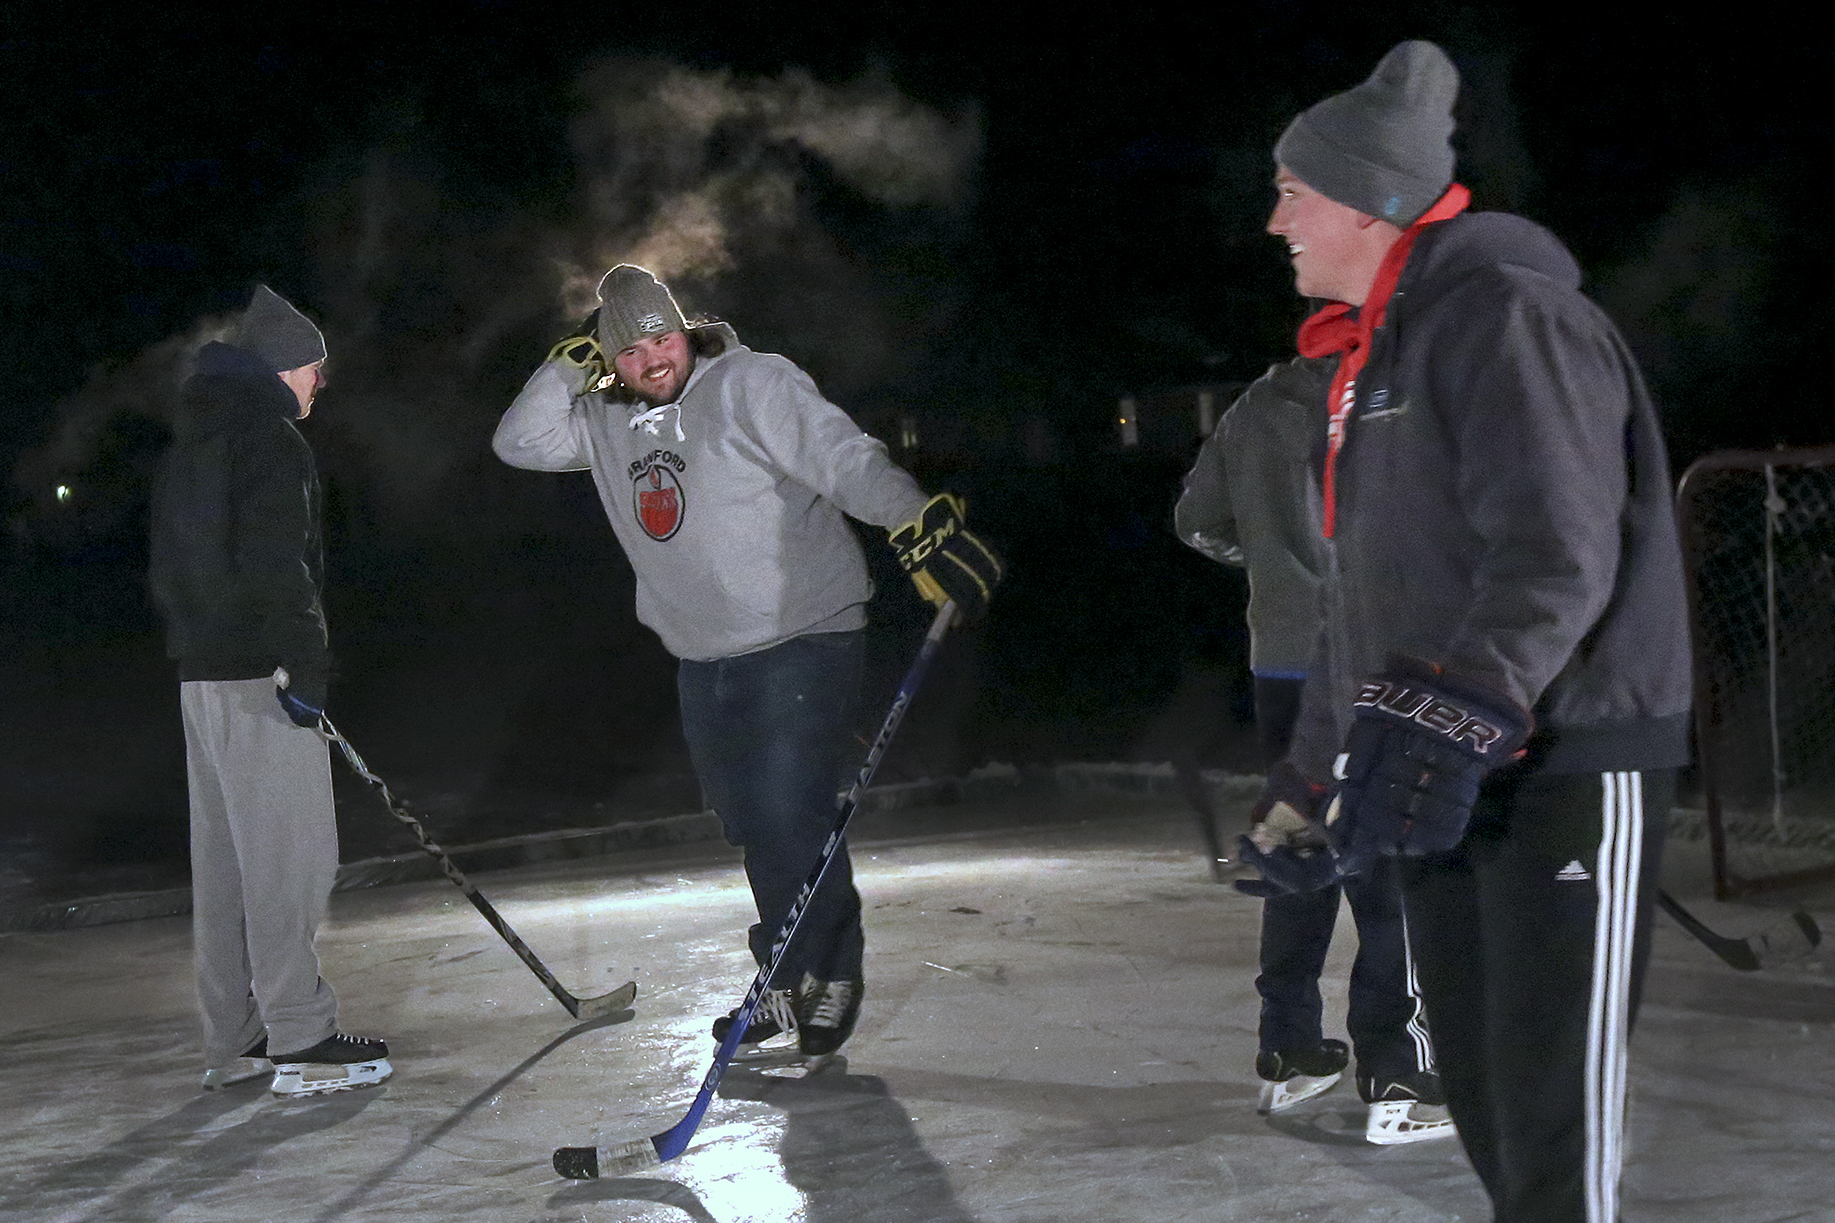 family extends winter tradition skates on own rink in backyard